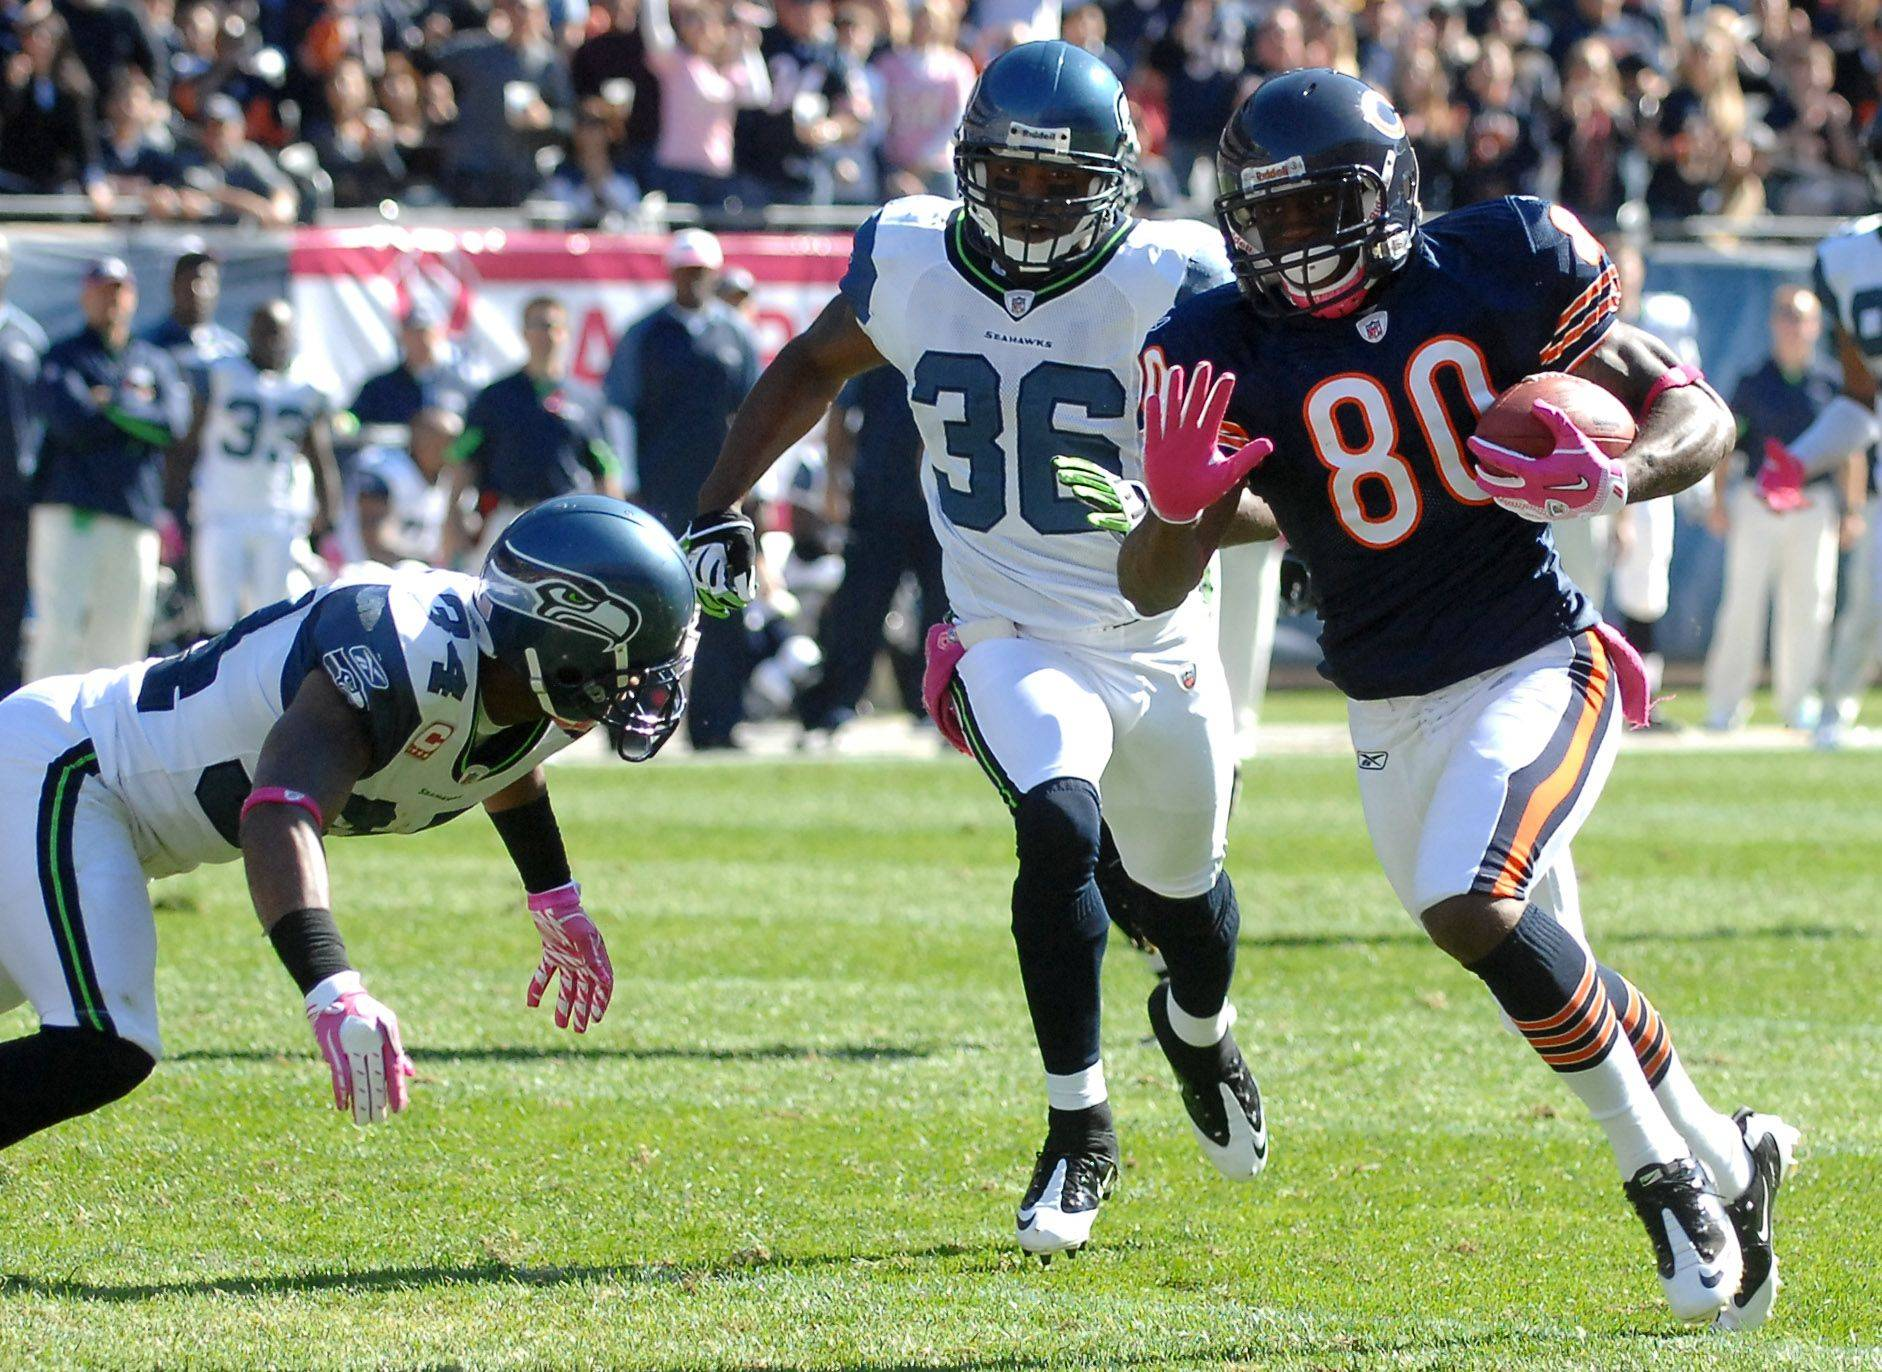 Chicago Bears wide receiver Earl Bennett breaks into the open.